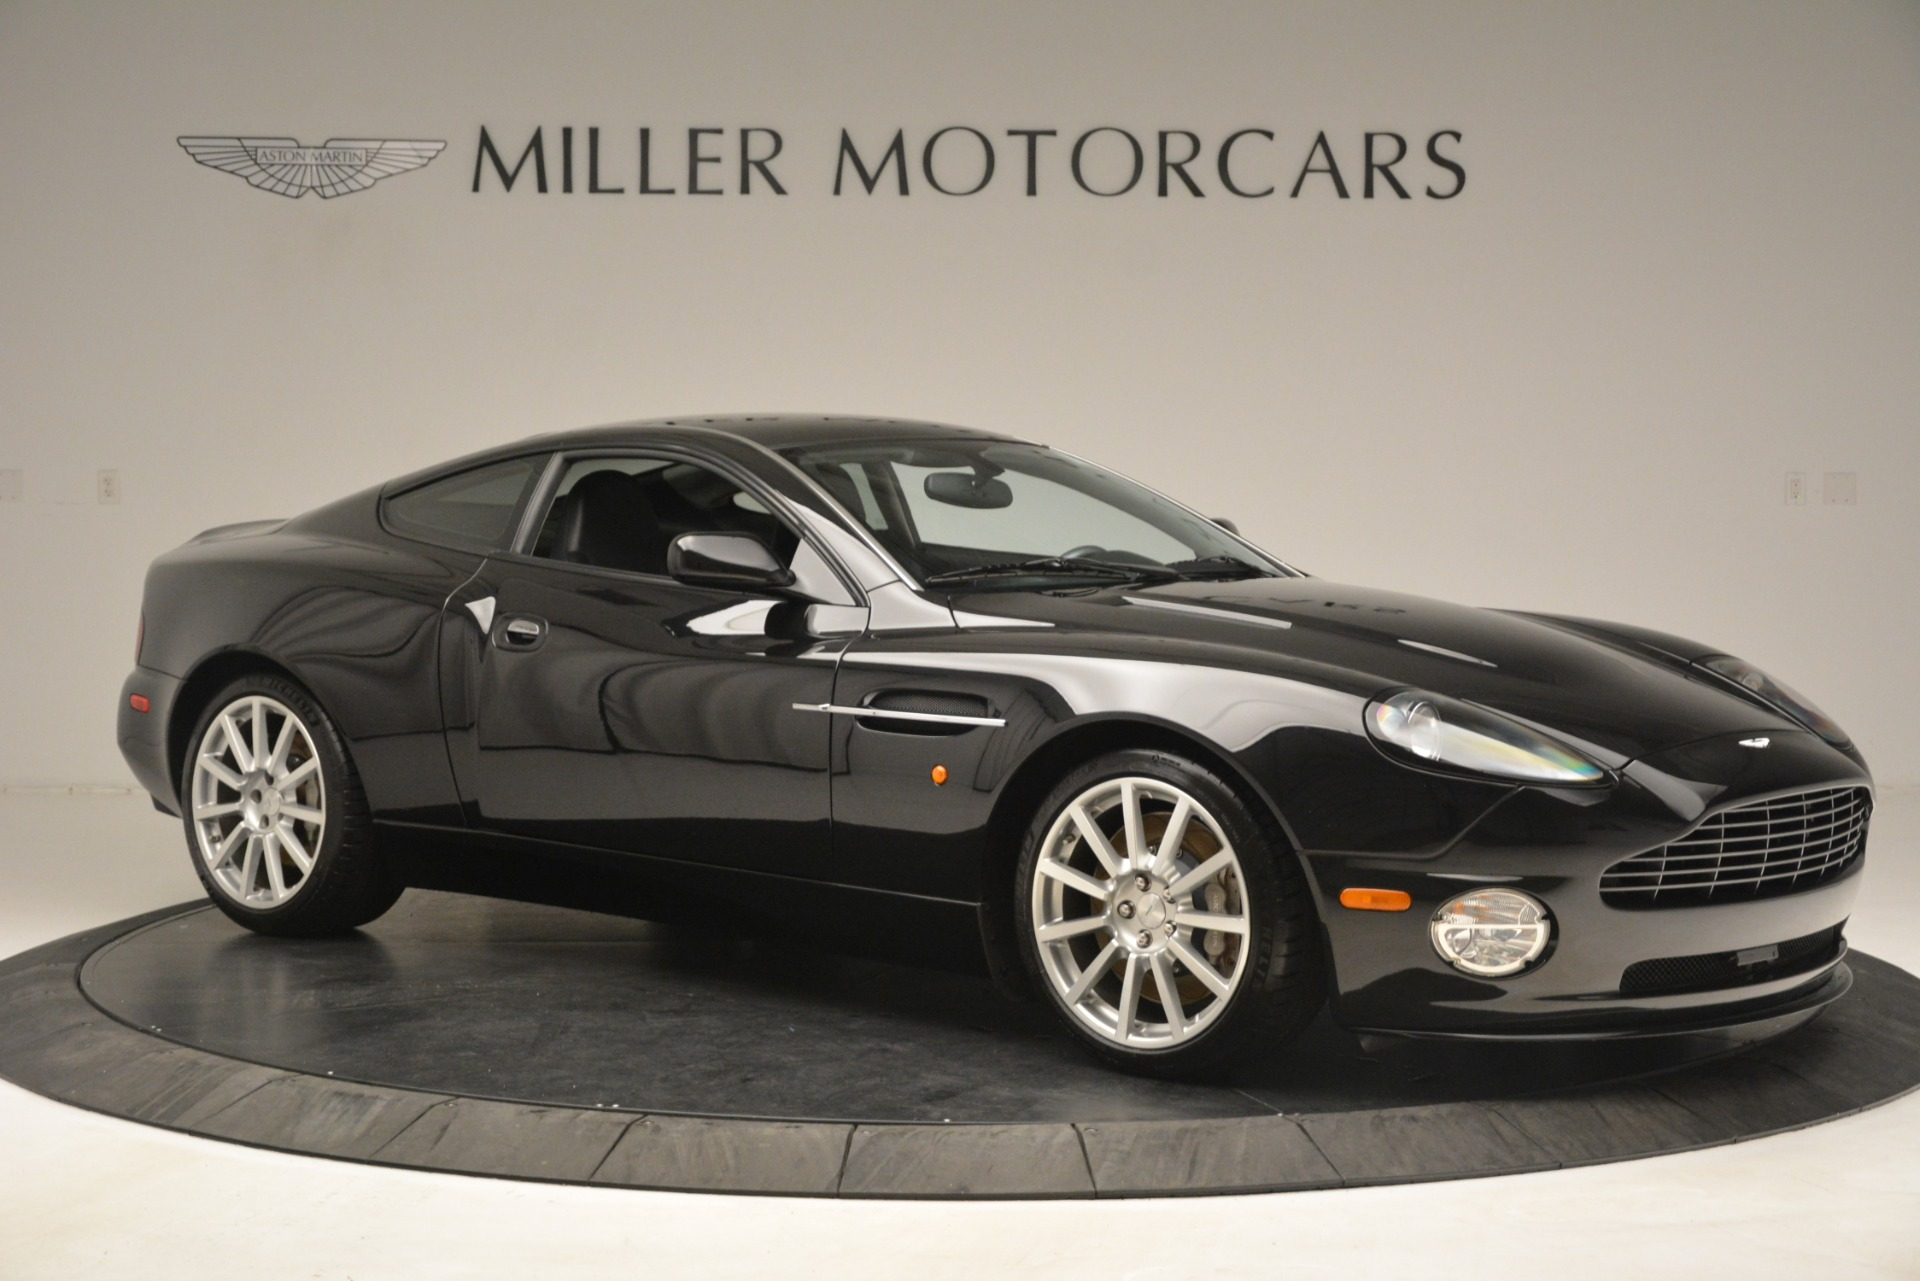 Used 2005 Aston Martin V12 Vanquish S For Sale In Greenwich, CT 3218_p10